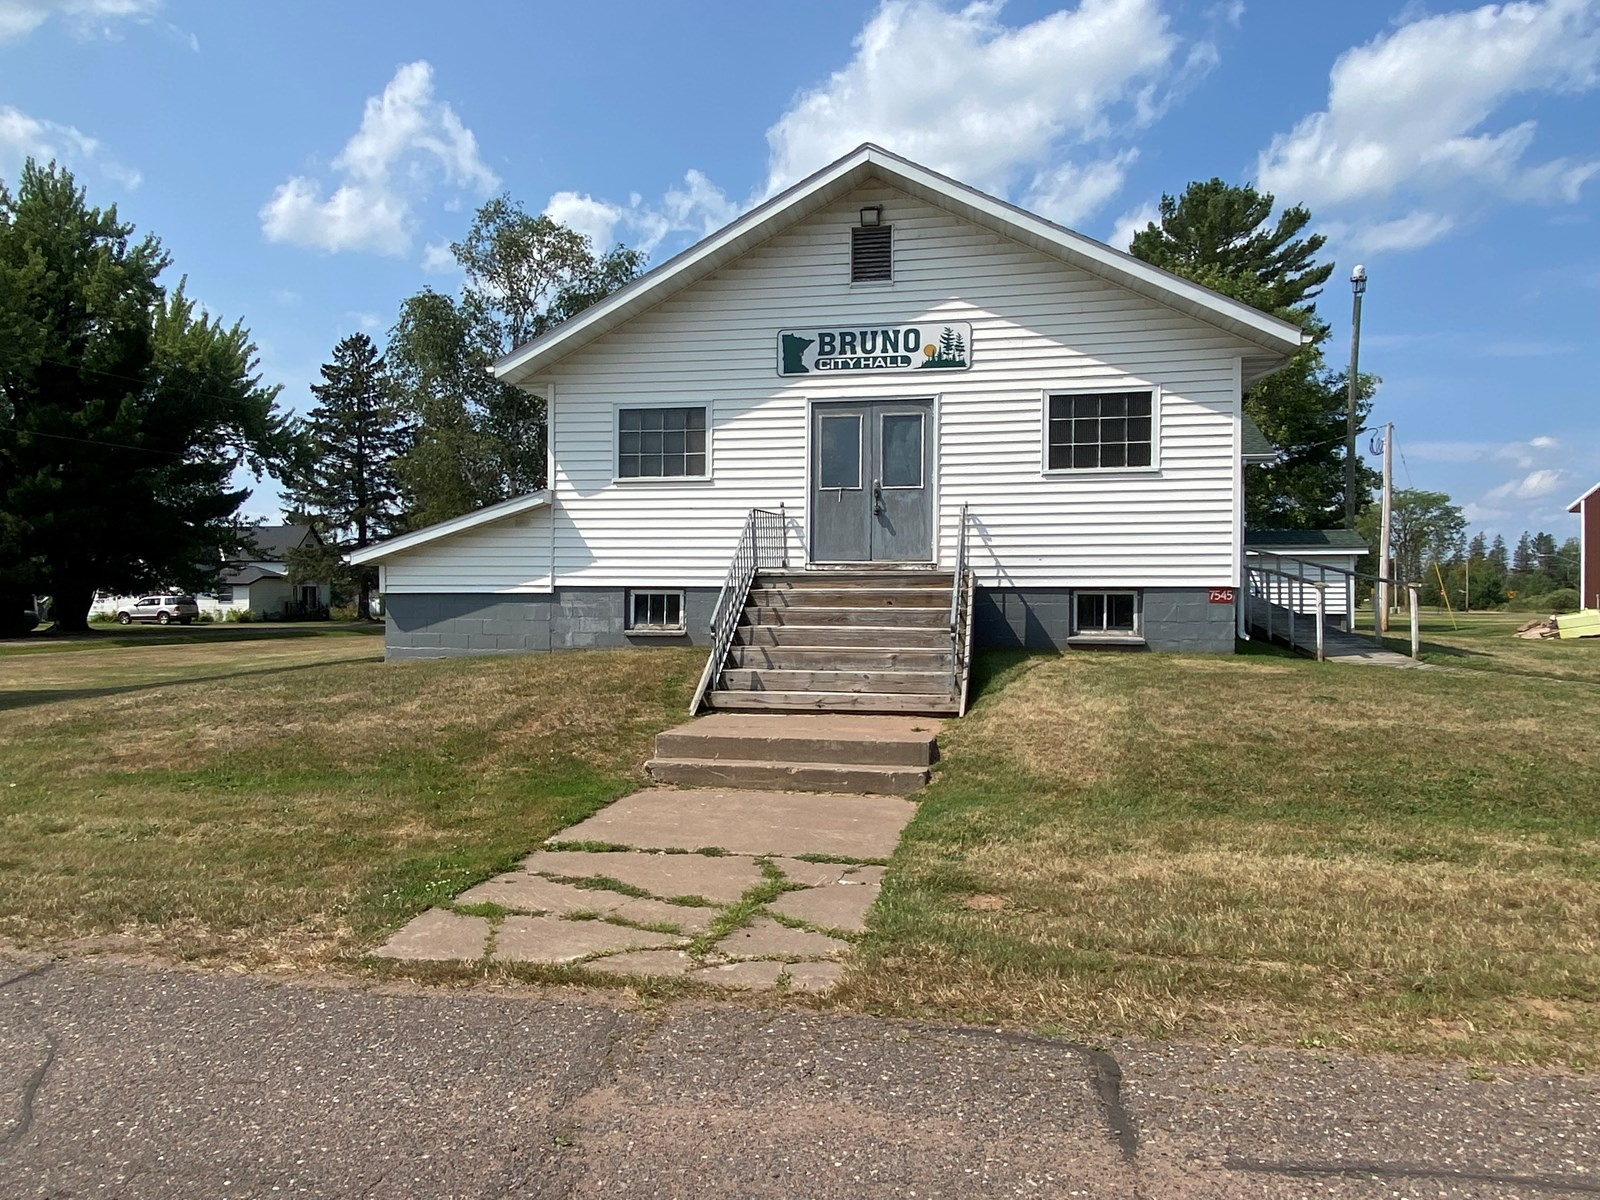 POSSIBILITIES! Real Estate for Sale in Bruno, MN